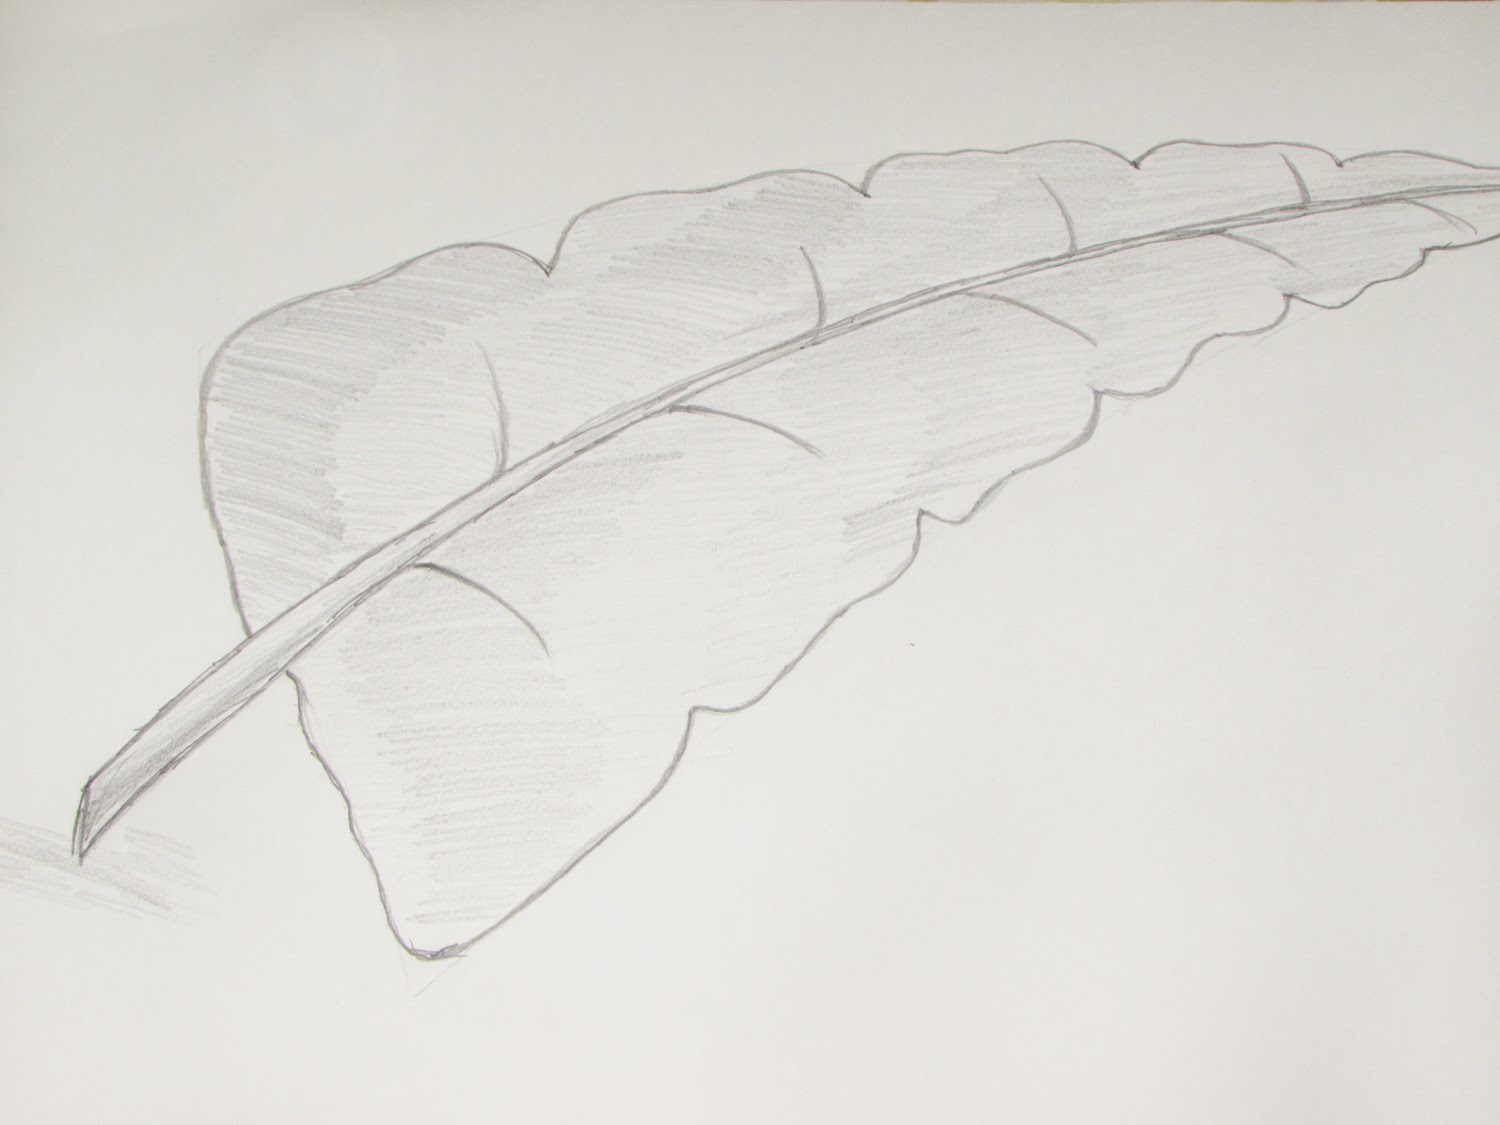 Drawn leaf Sketch Sketch or Using of